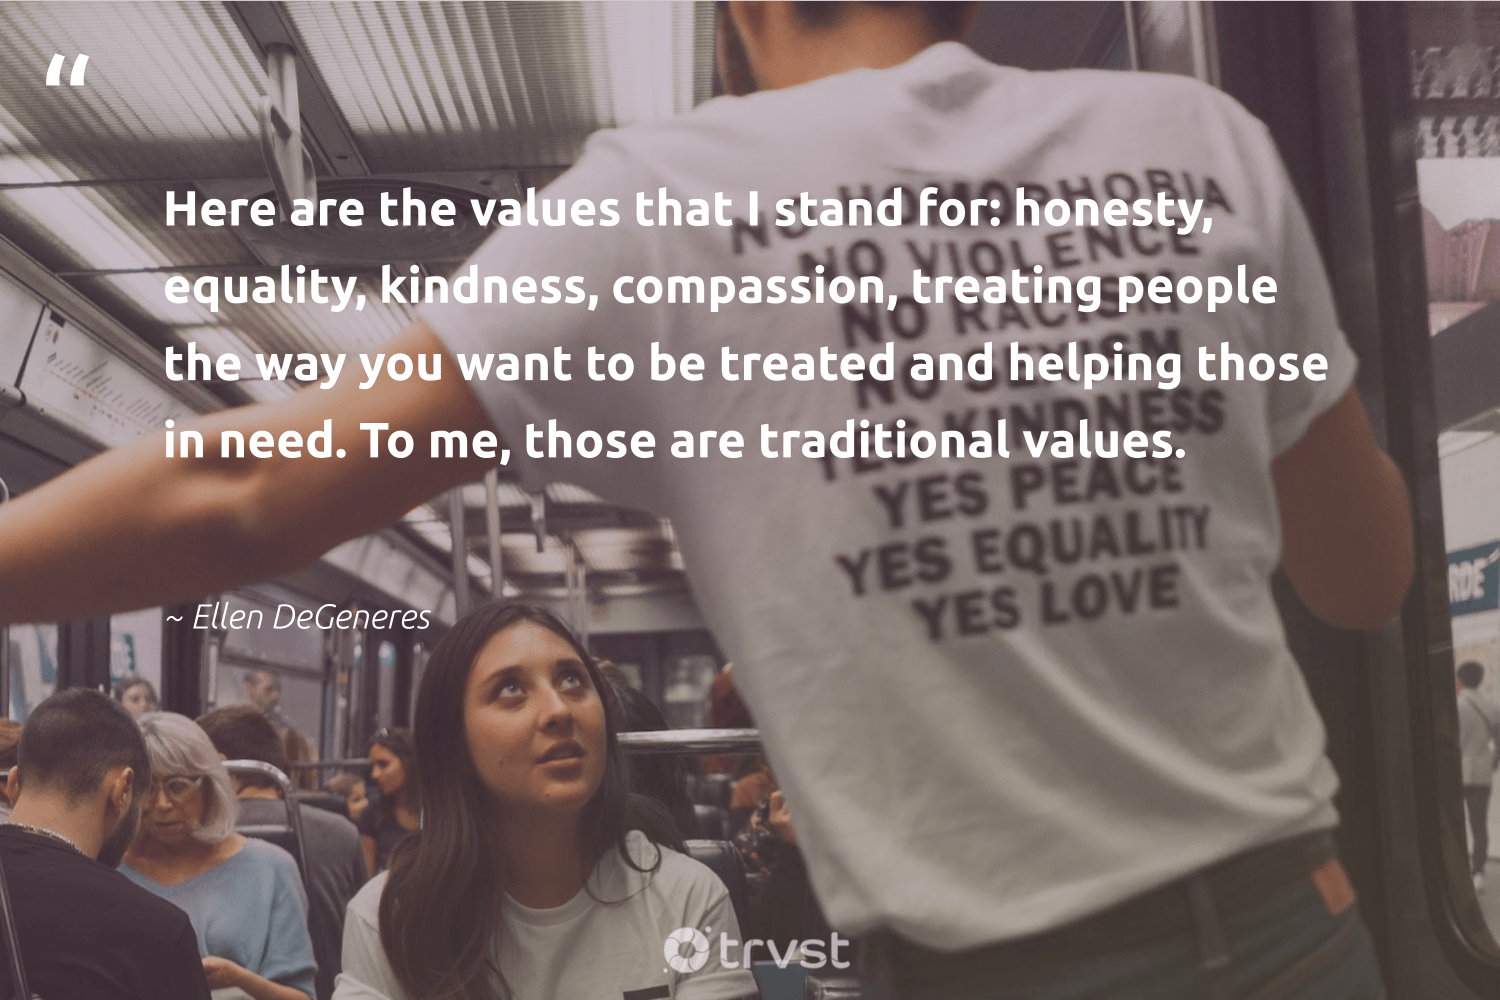 """Here are the values that I stand for: honesty, equality, kindness, compassion, treating people the way you want to be treated and helping those in need. To me, those are traditional values.""  - Ellen DeGeneres #trvst #quotes #equality #standup #socialchange #makeadifference #dogood #empowerment #bethechange #socialgood #beinspired #equalopportunity"